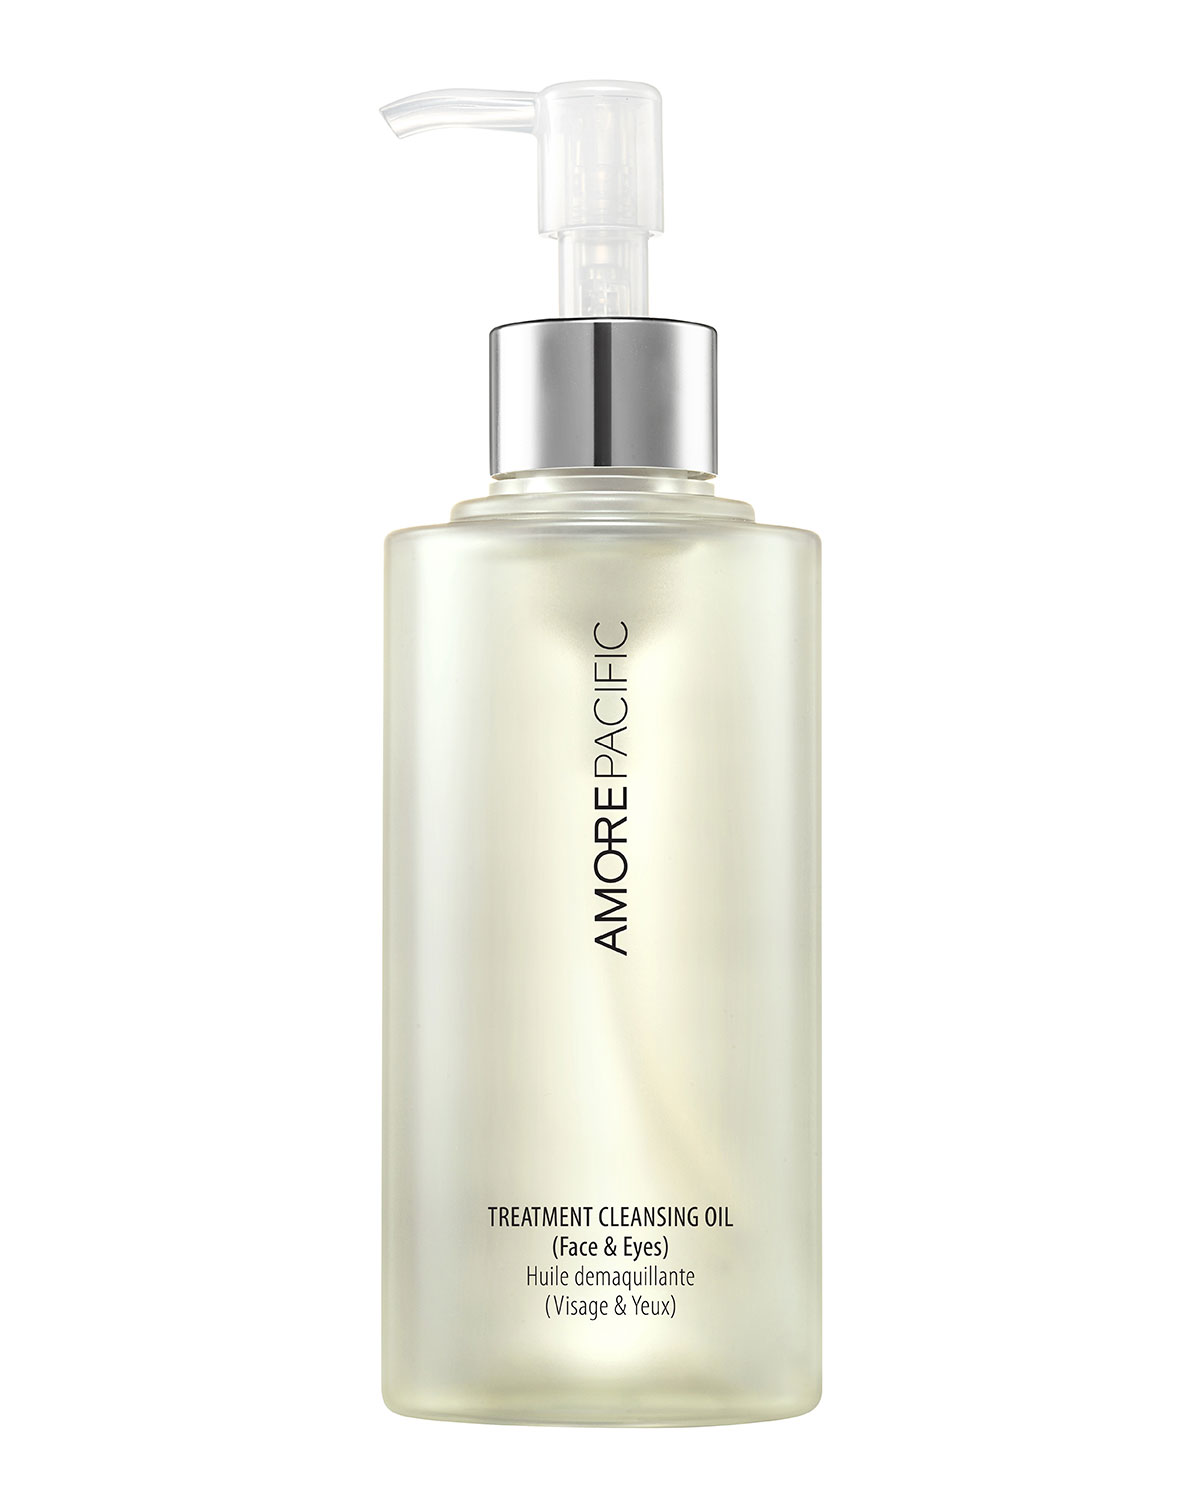 Amore Pacific - Cleansing Oil